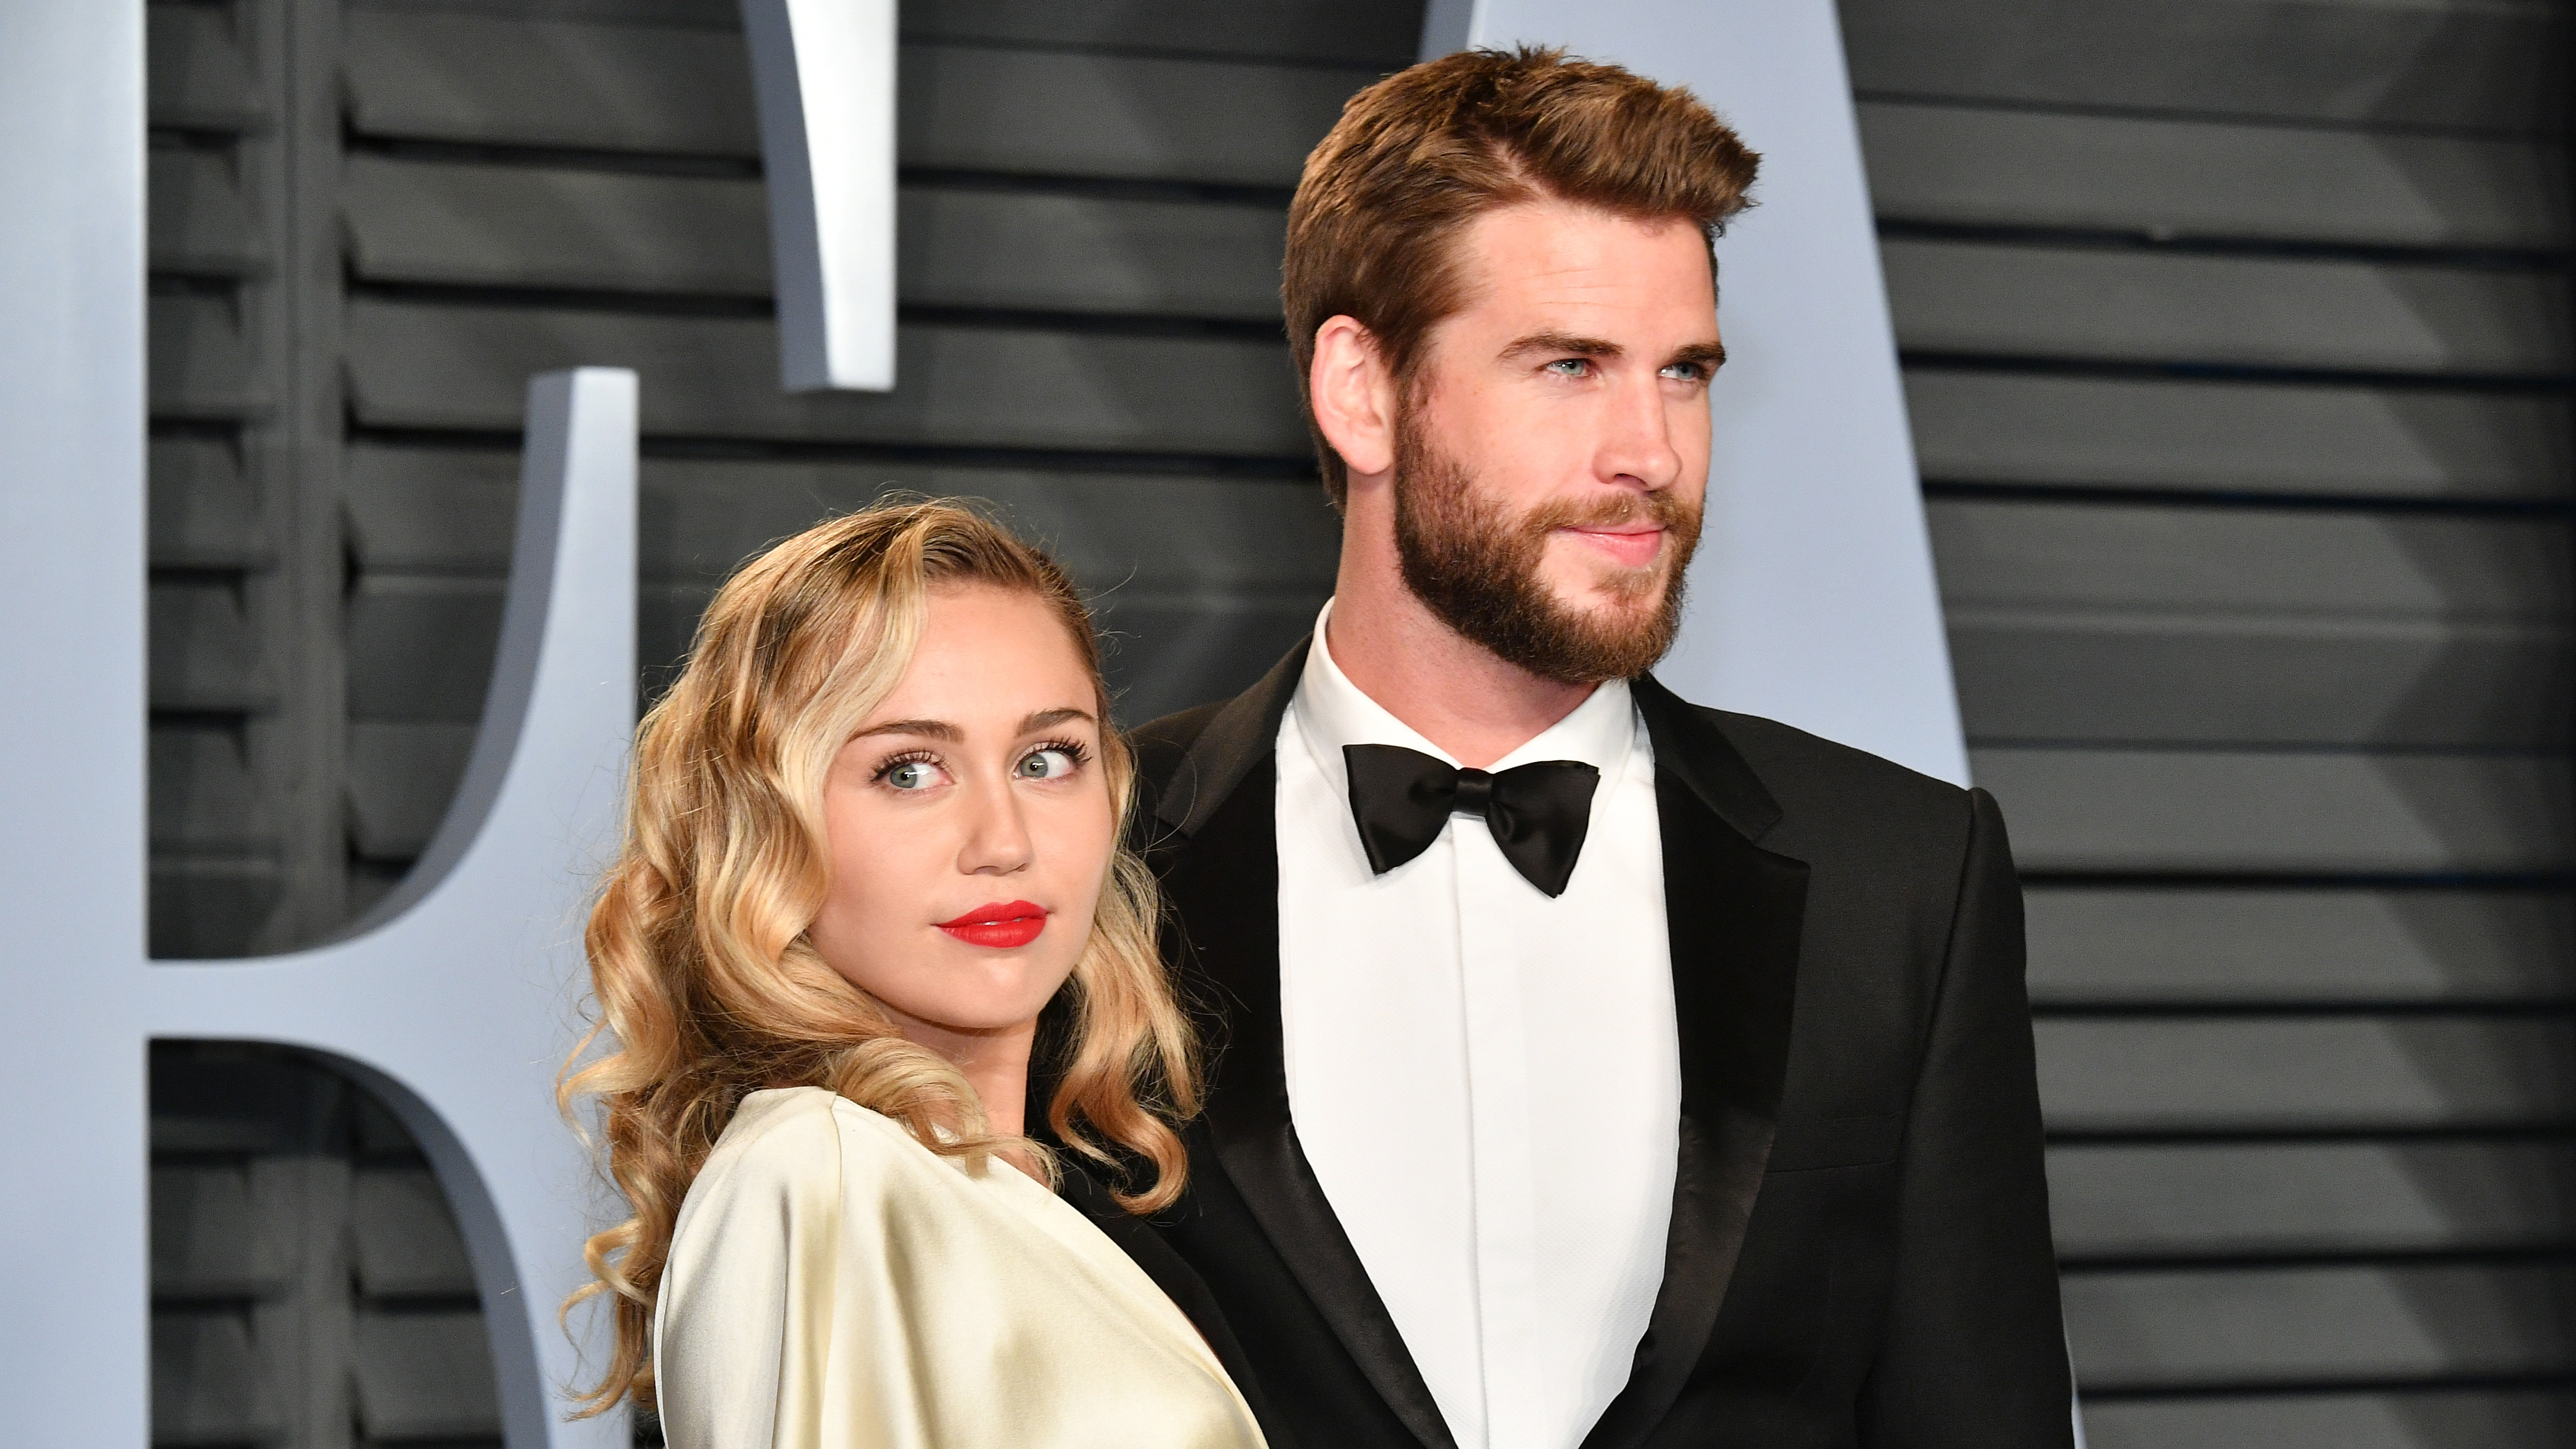 This new detail to Liam Hemsworth and Miley Cyrus' split is heartbreaking